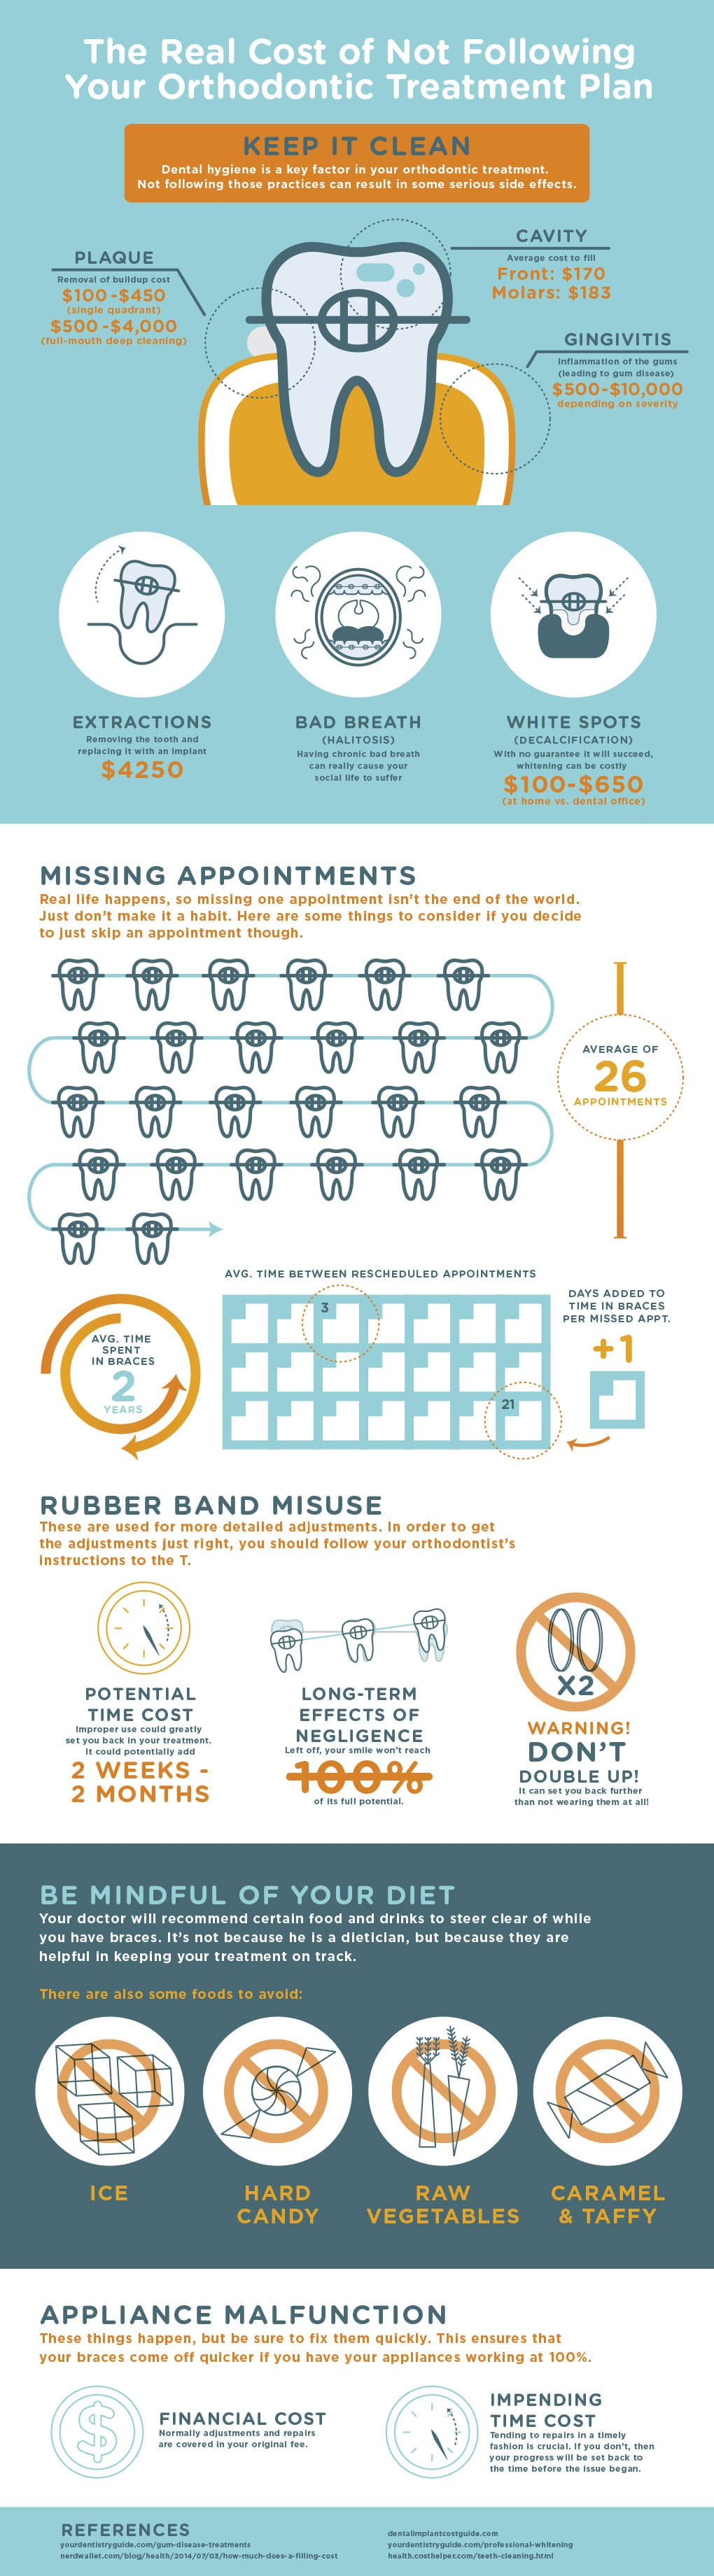 The real cost of not following your braces treatment plan infographic